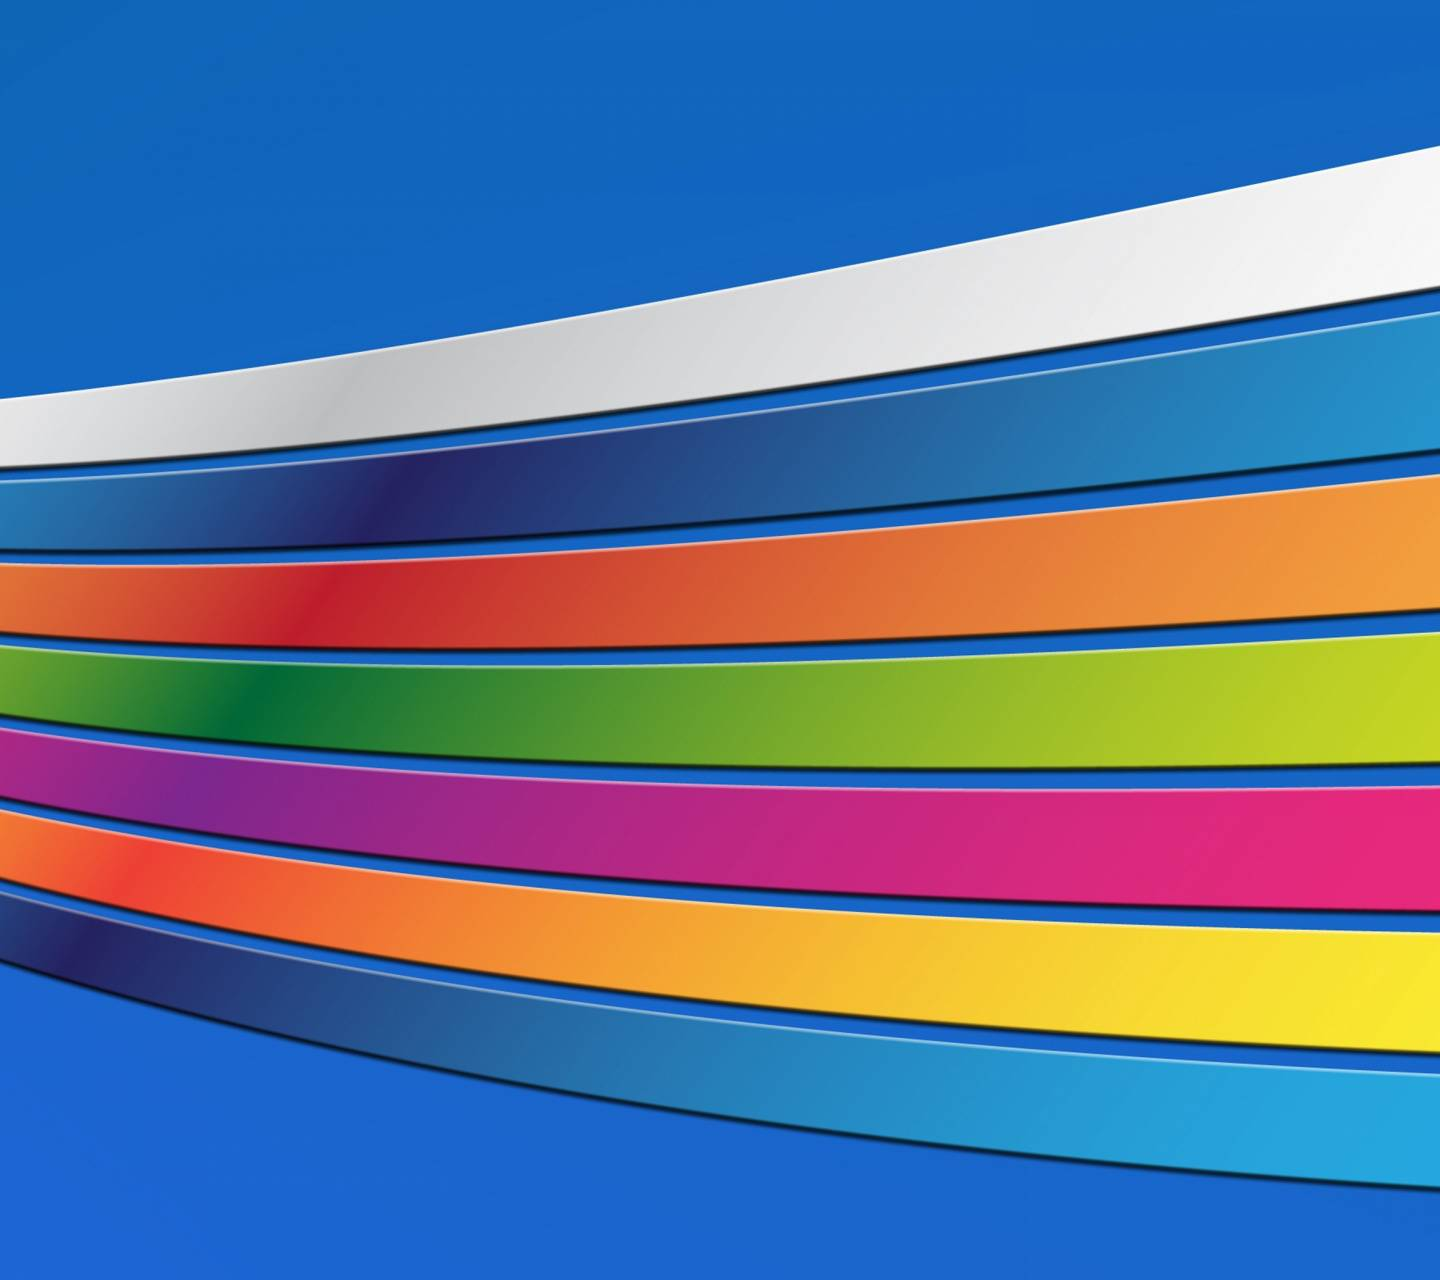 Rainbow Band Wallpaper By Dipak750 2e Free On Zedge